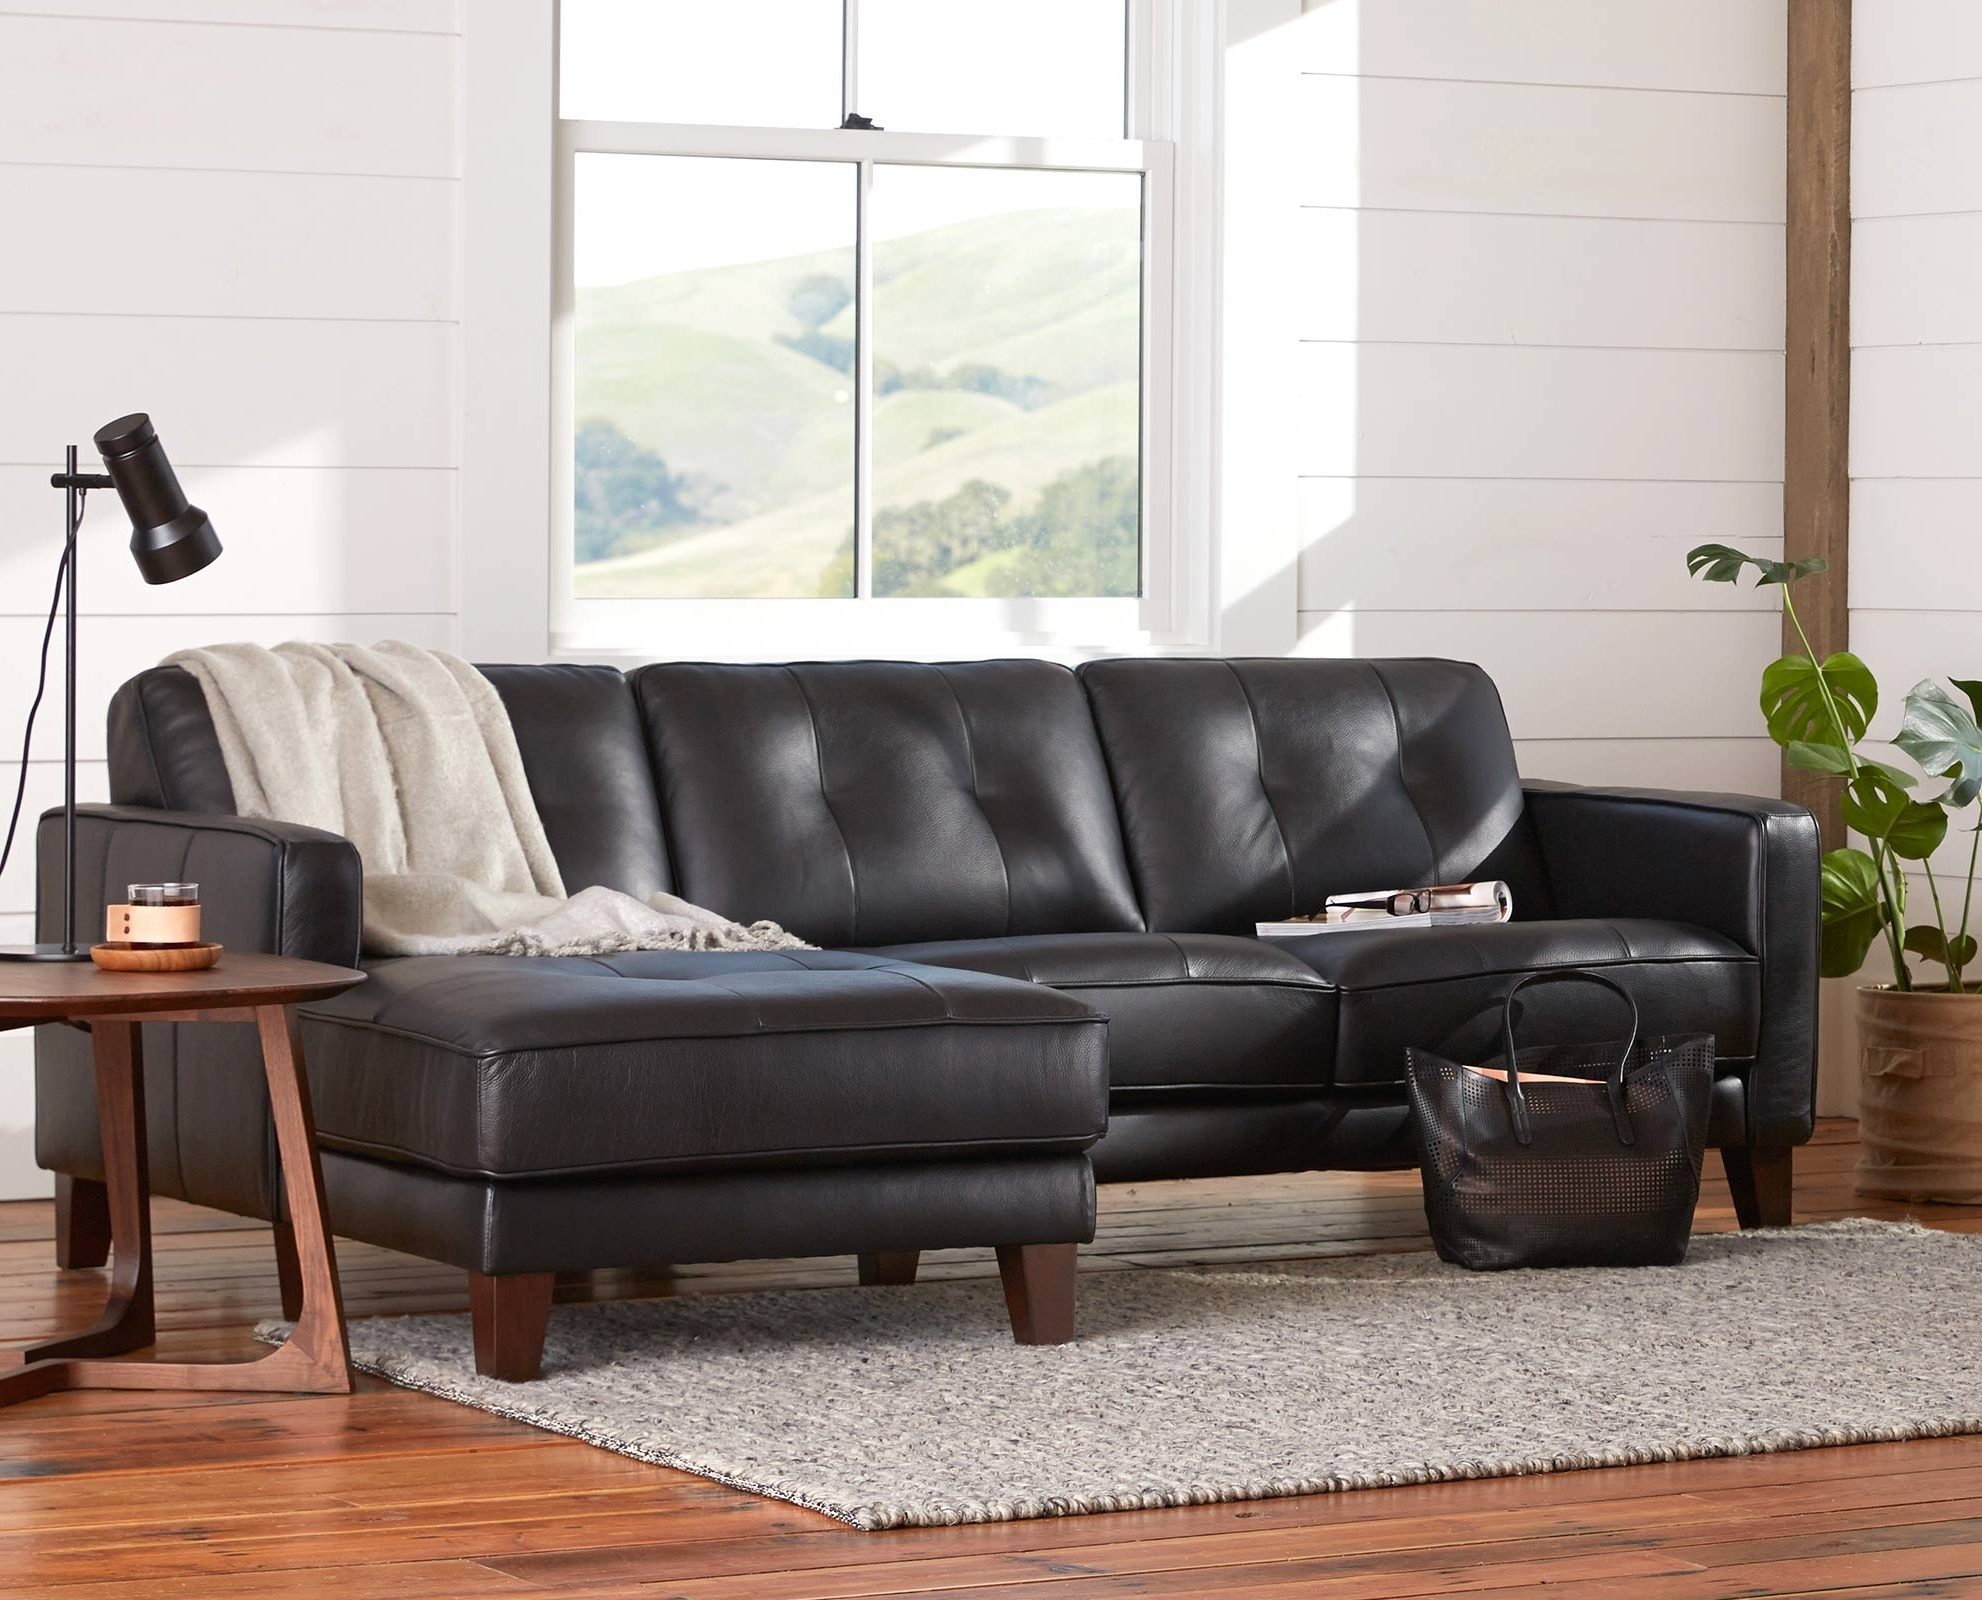 Furniture: Wonderful Selection Of Qualitydaniafurniture Inside Famous Dania Sectional Sofas (Gallery 16 of 20)